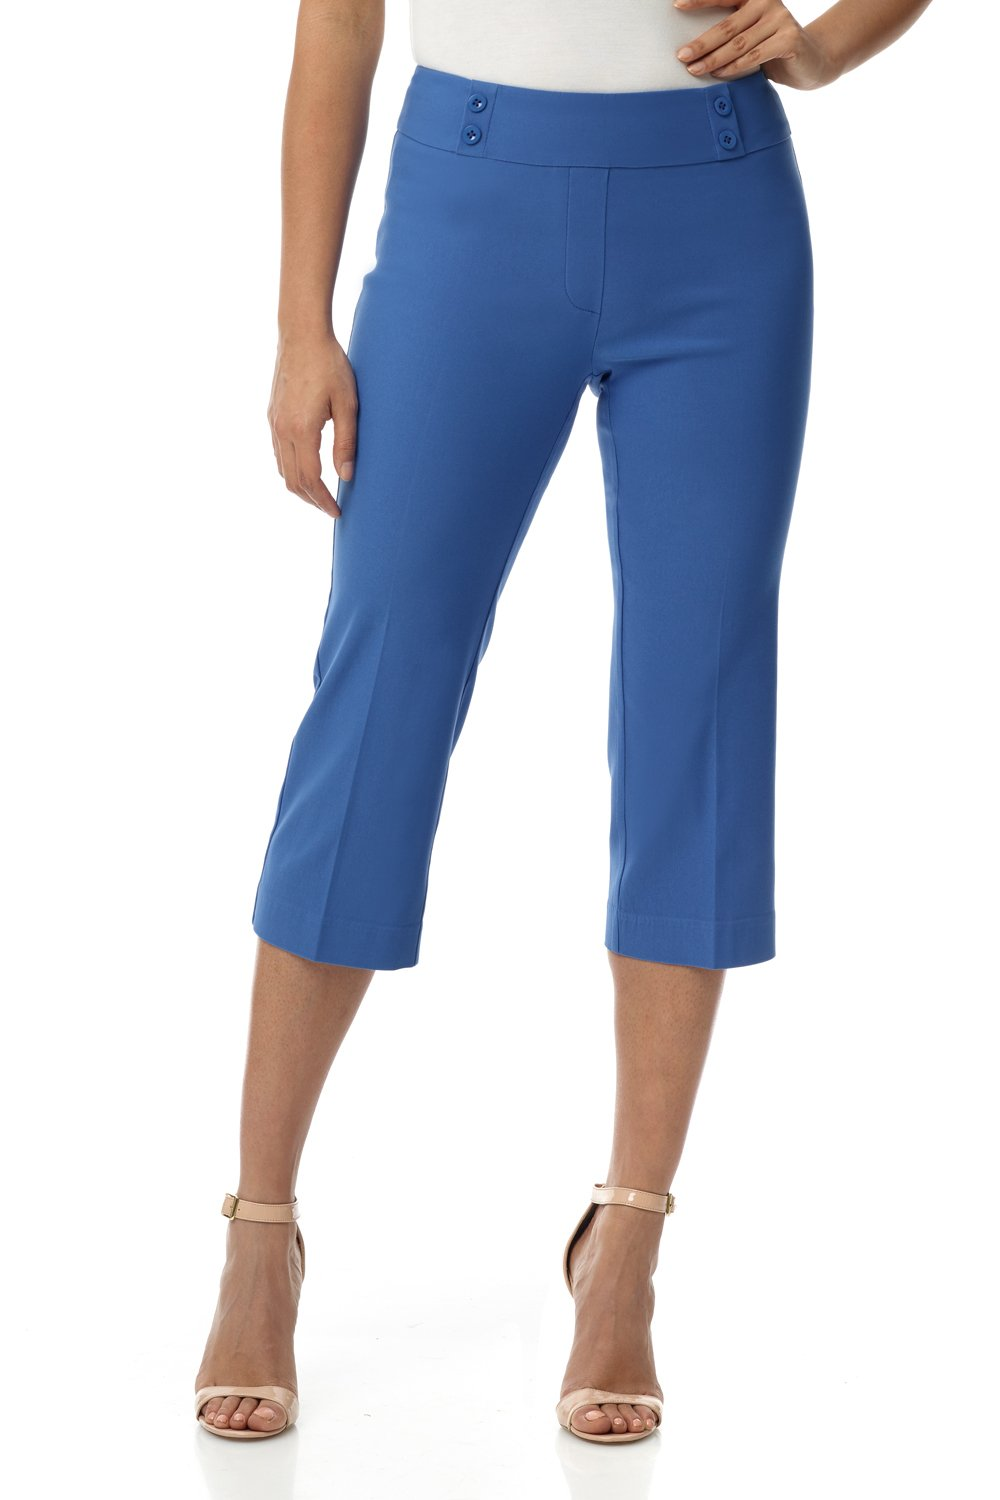 Rekucci Women's Ease in to Comfort Fit Capri with Button Detail (8,Bluebell)